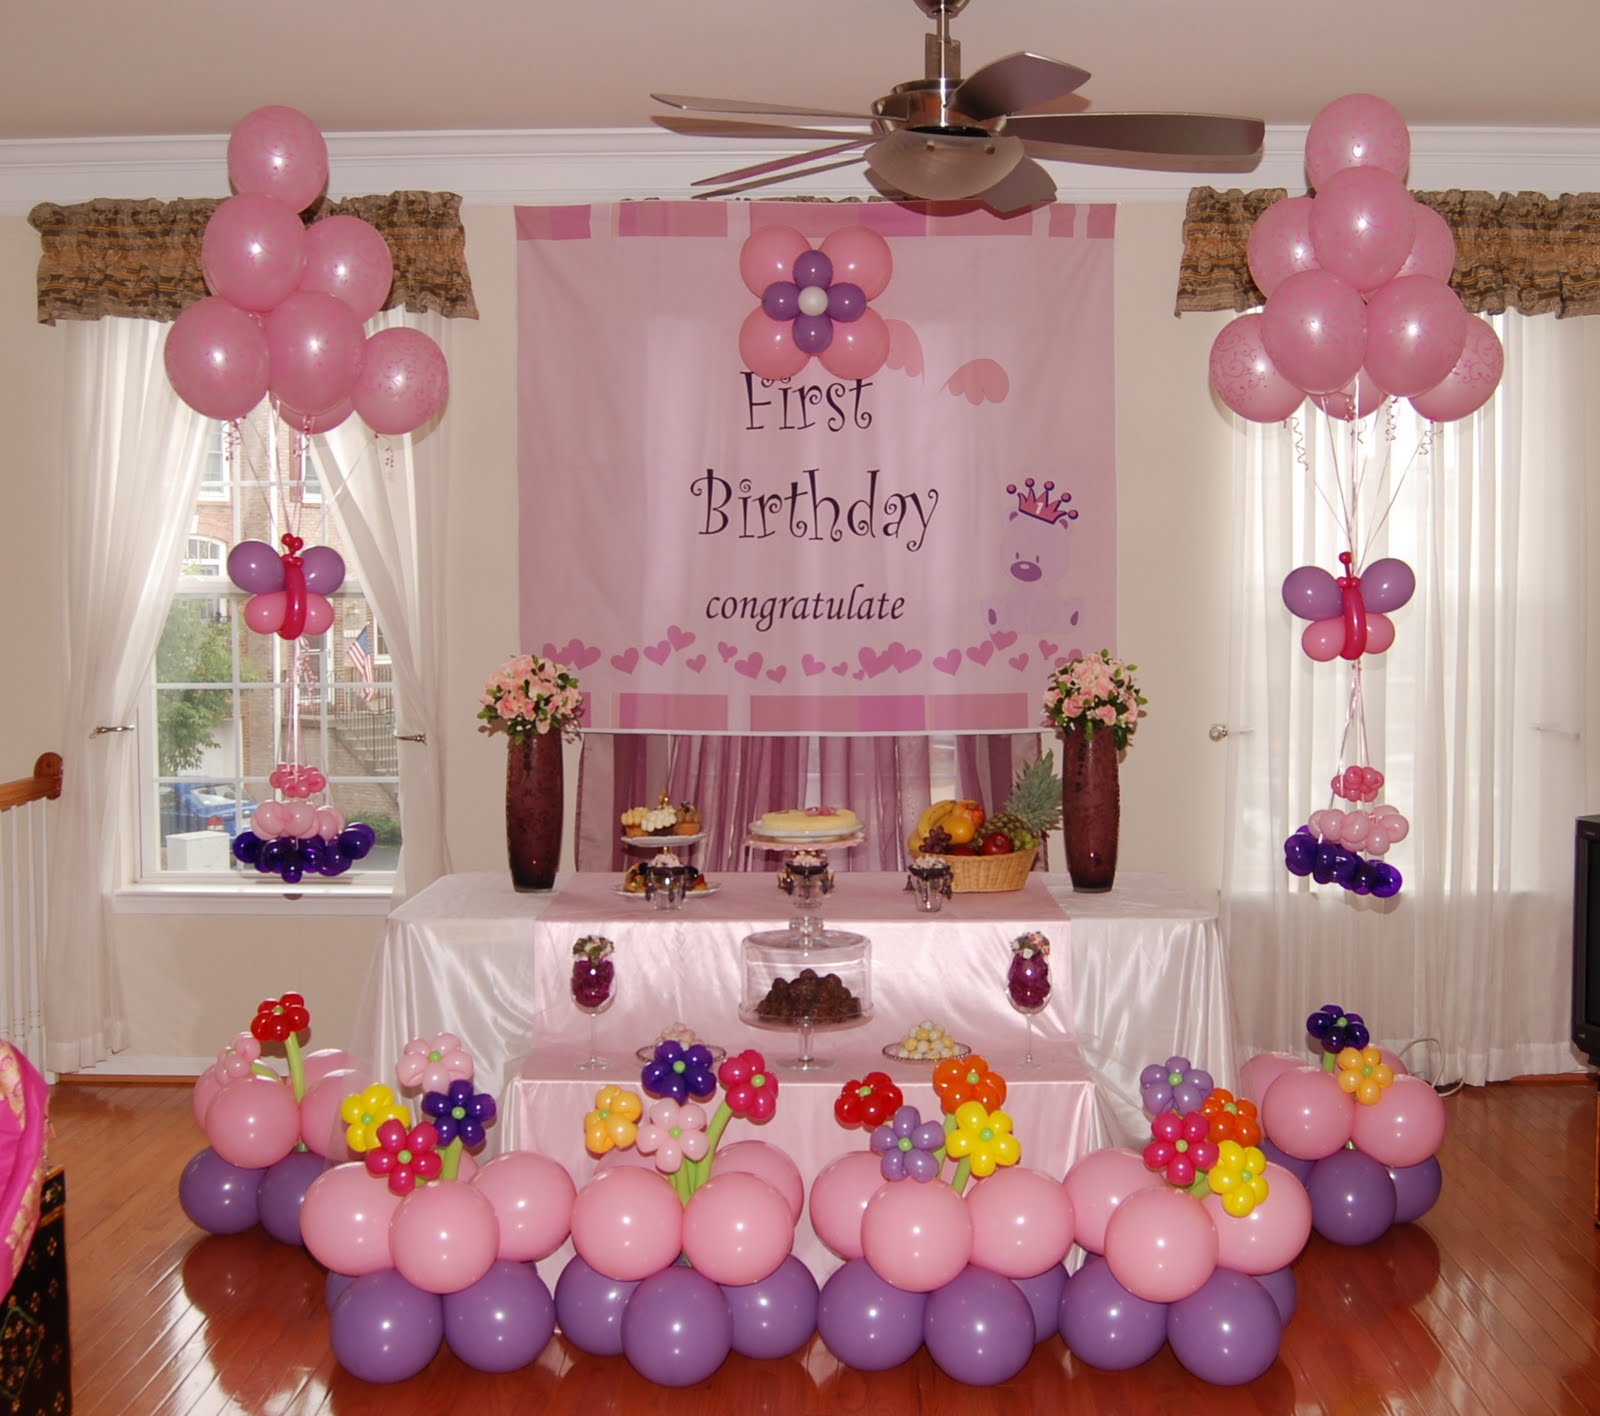 All the party needs a plan. Even a simple birthday party requires ...